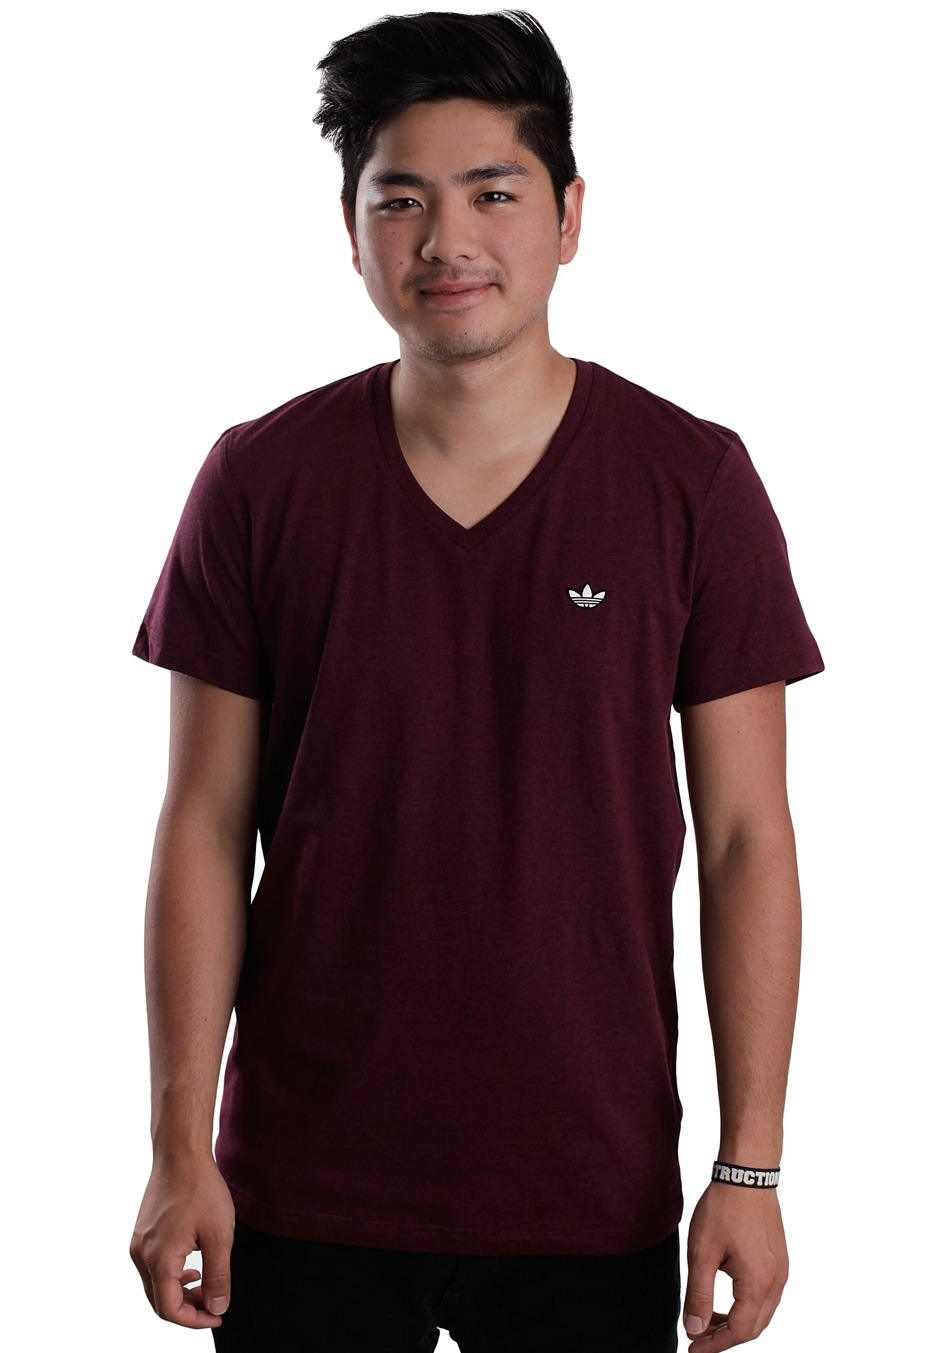 Neck Shirt Adidas Originals Heatherlight Maroon Colored T V CX0qXwng